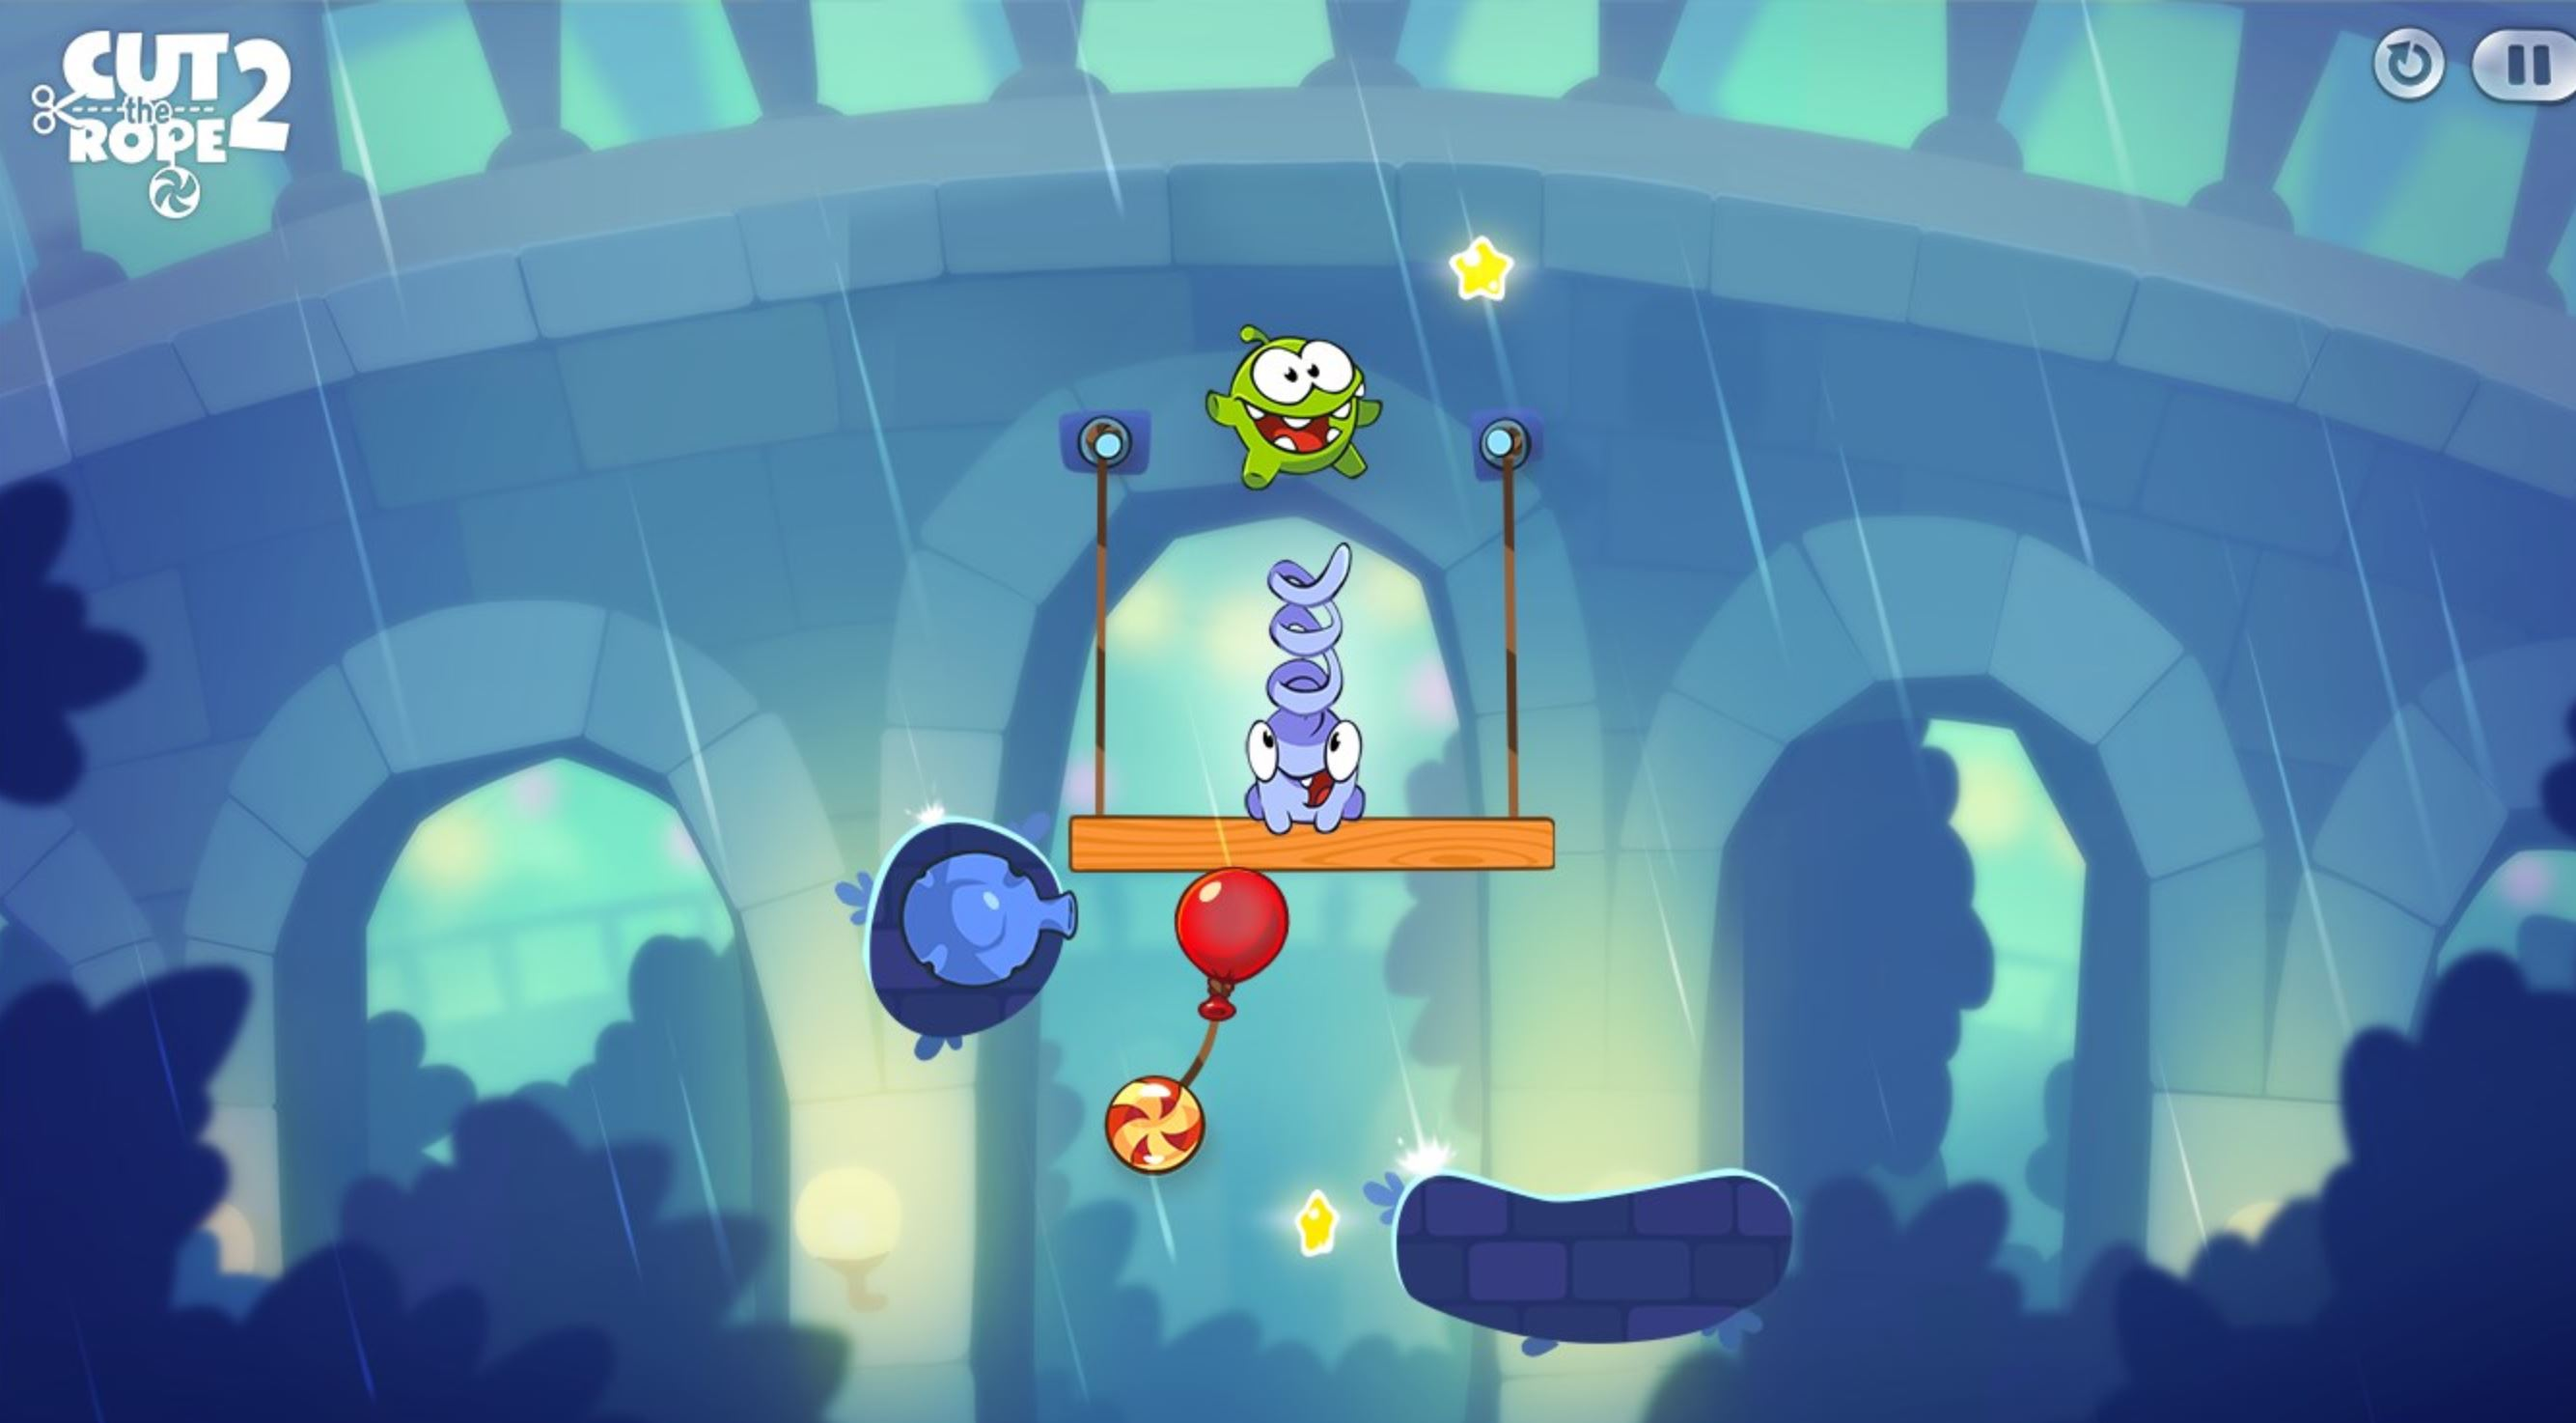 Cut the rope 2 Windows Store